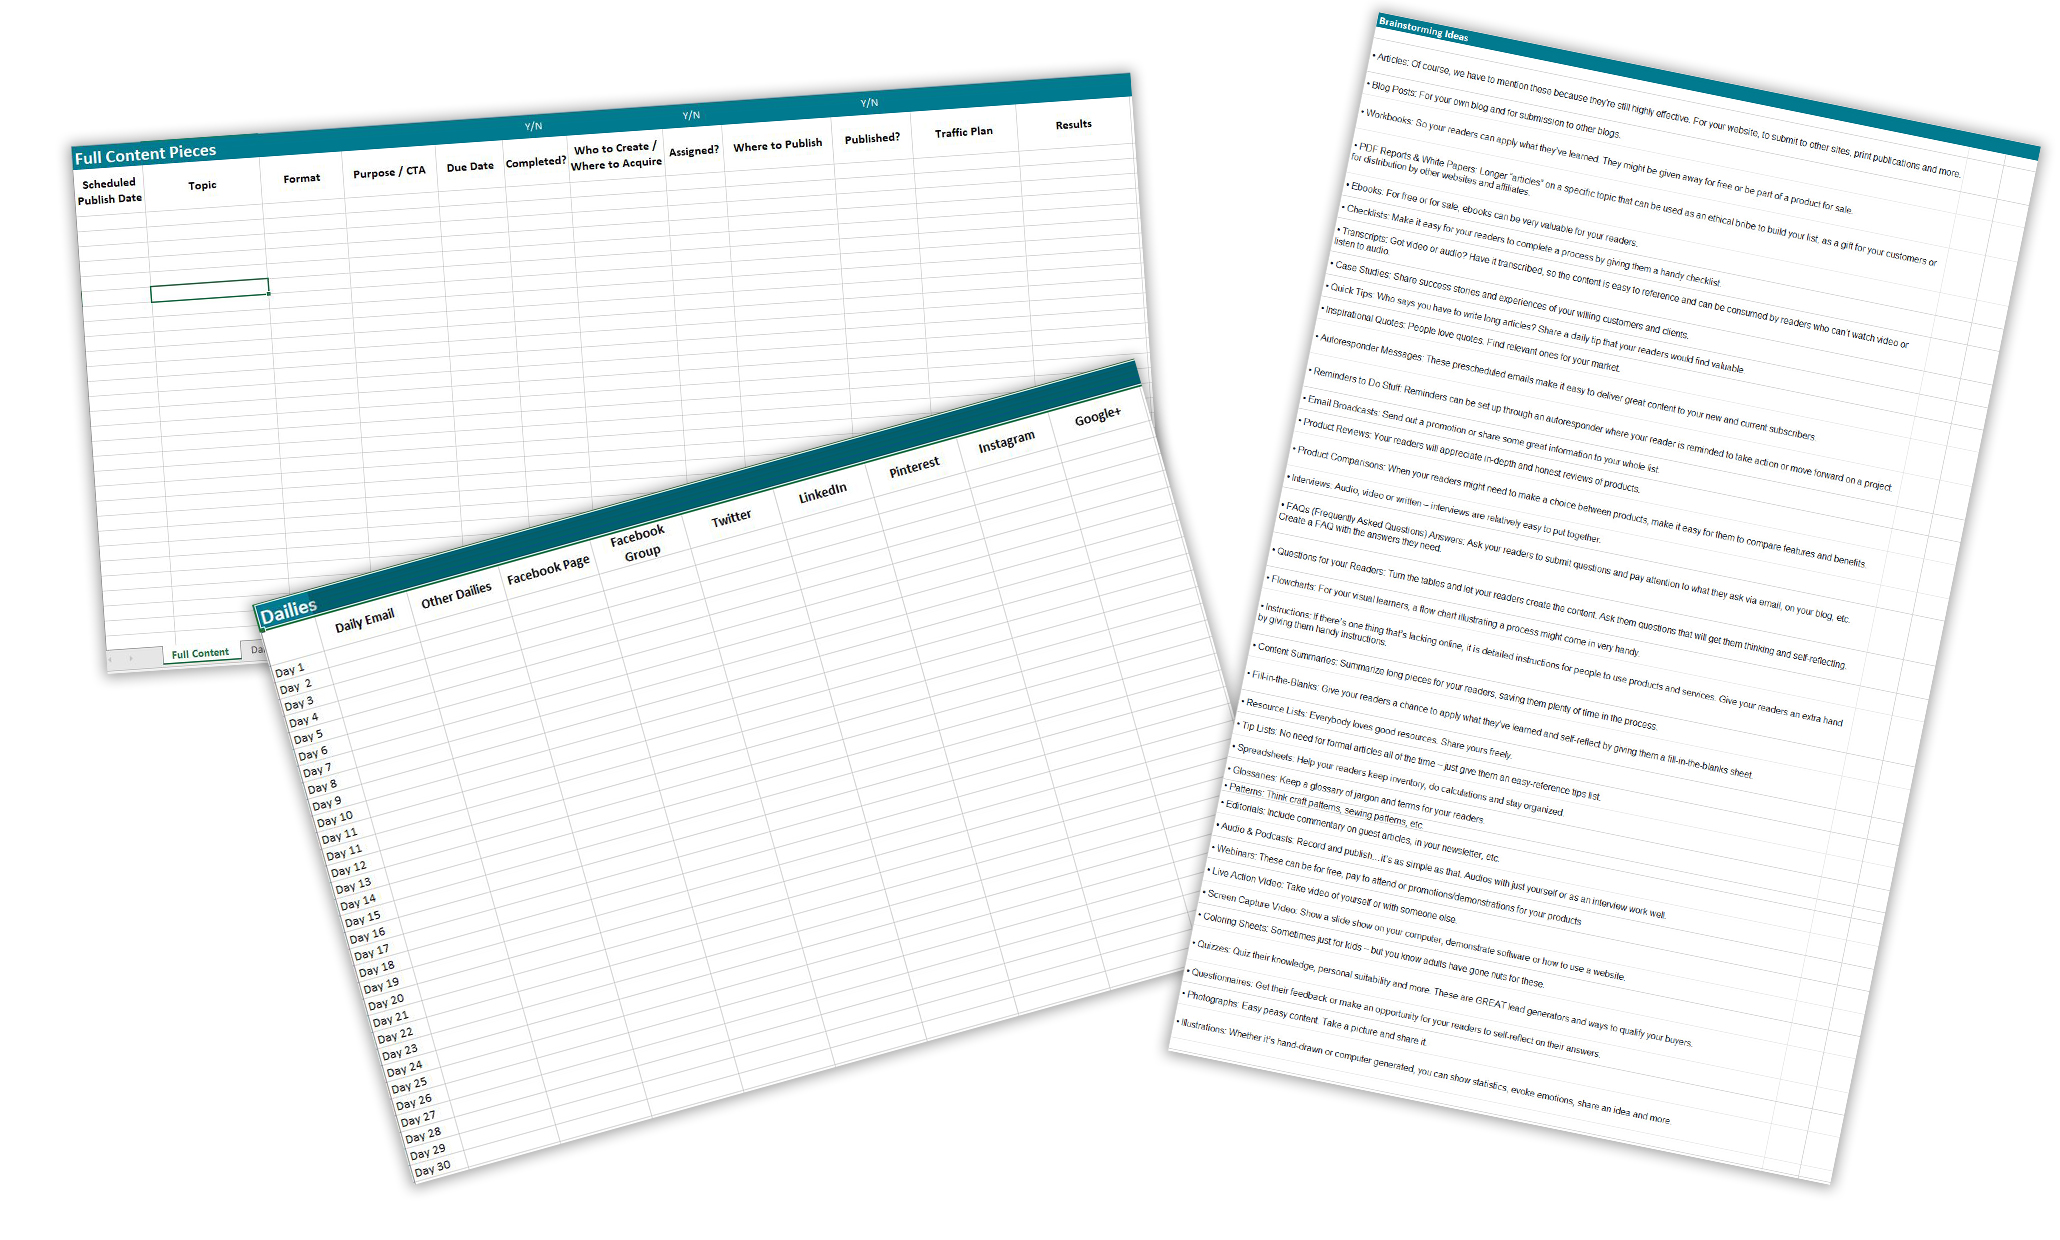 Monthly Content Planner